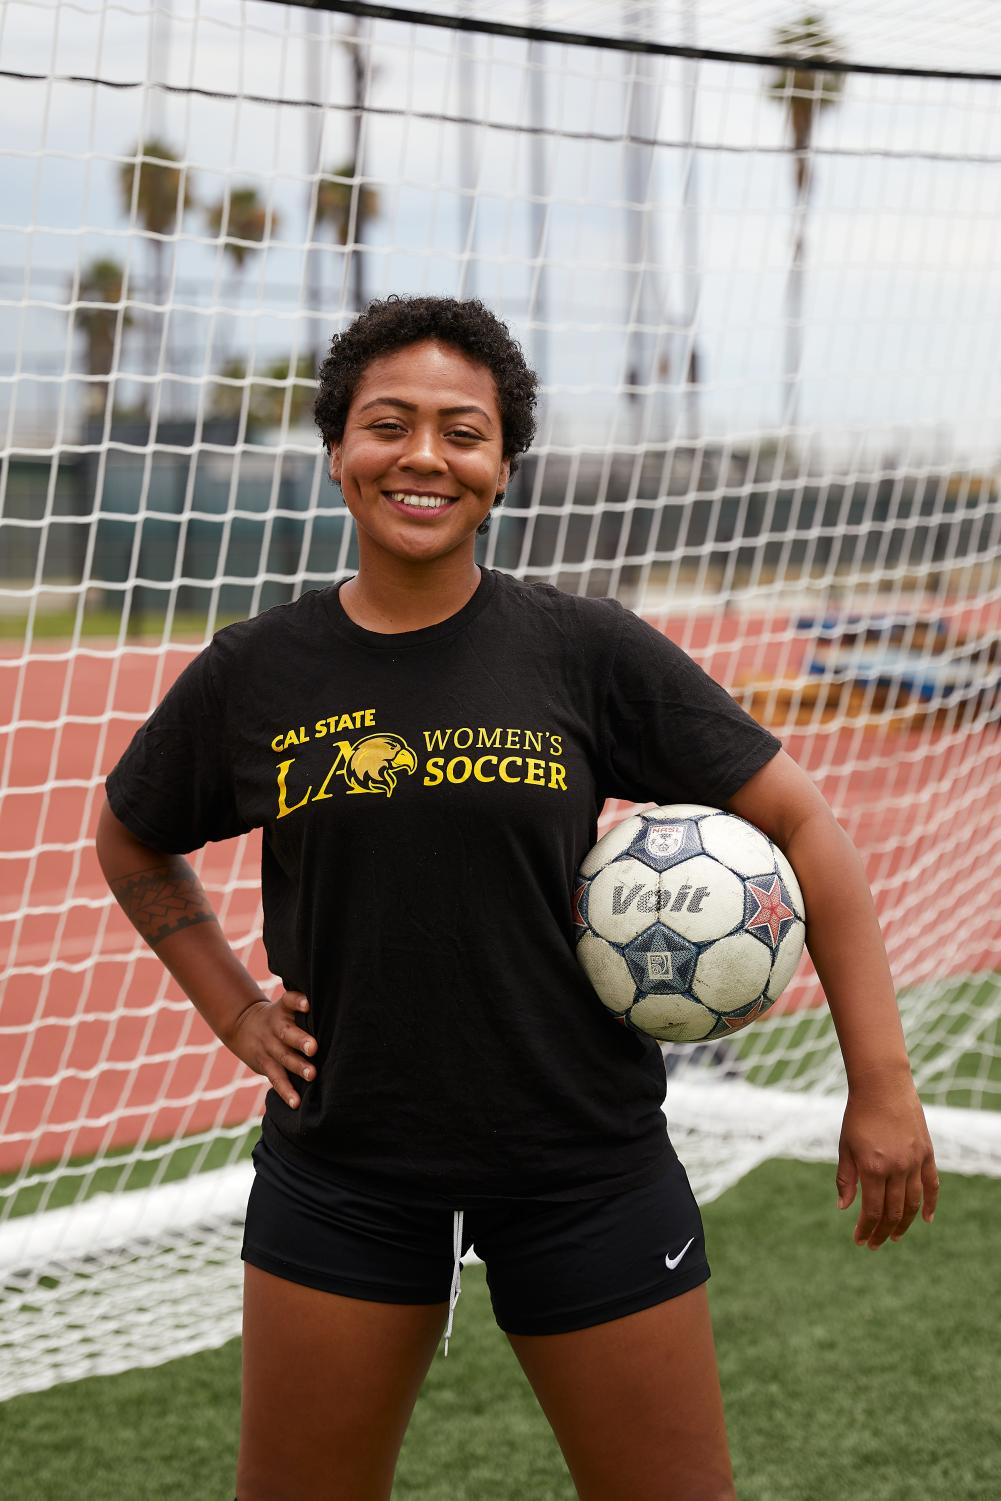 Golden Eagle Women's Soccer forward, Leslie Ramirez was drafted for the Guatemalan National women's soccer team and has an opportunity to qualify in the 2020 Olympics.